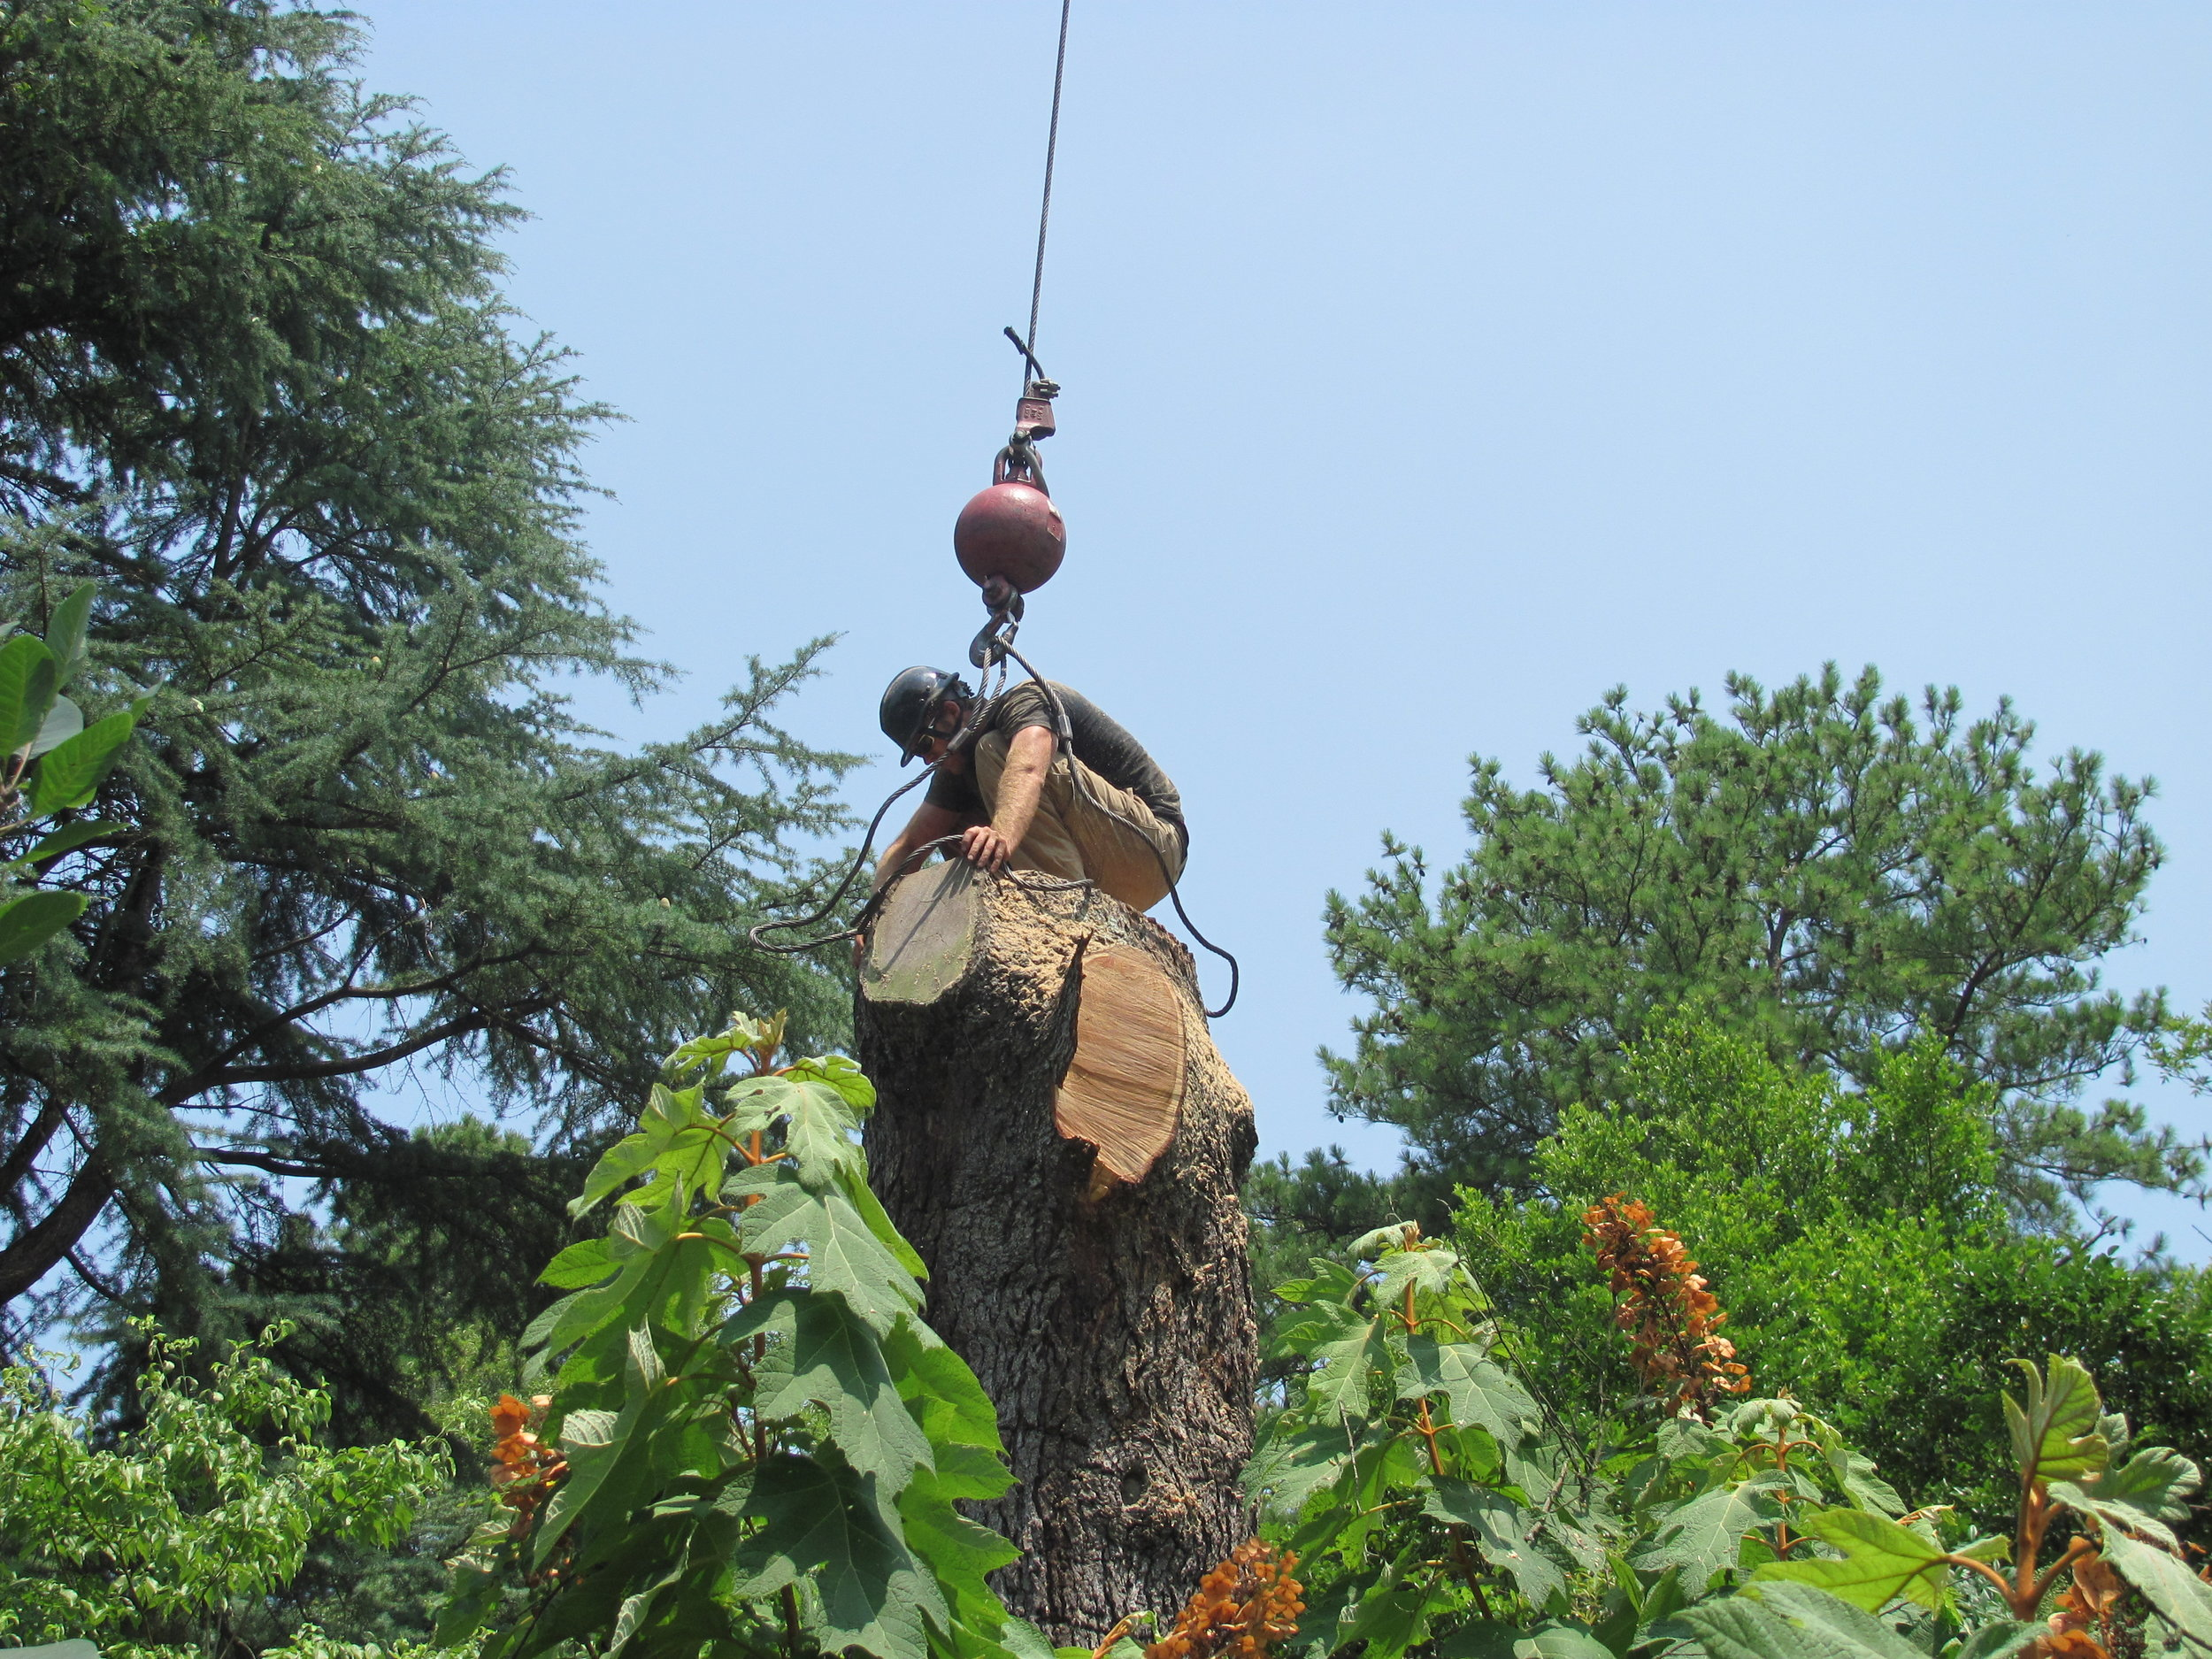 The tree is carefully cut and secured by local expert arborist.